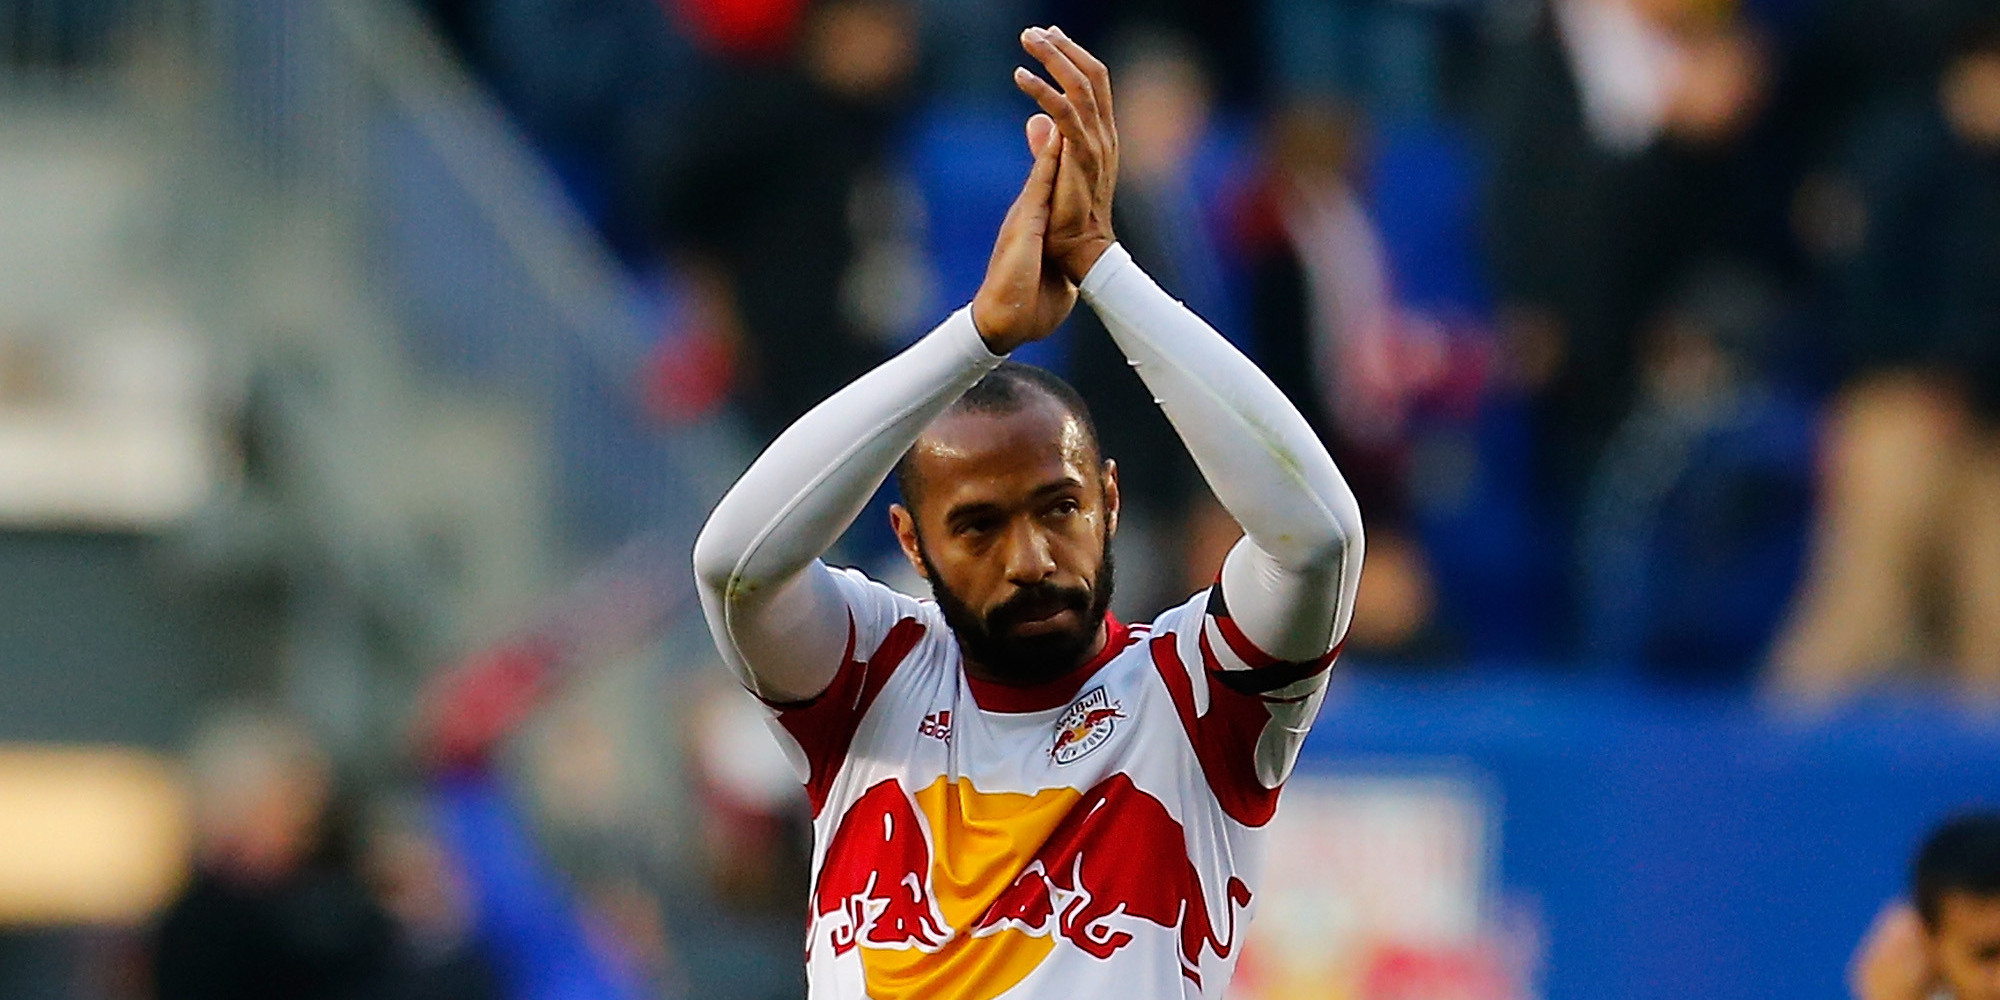 Thierry Henry An Extraordinary Passionate Player